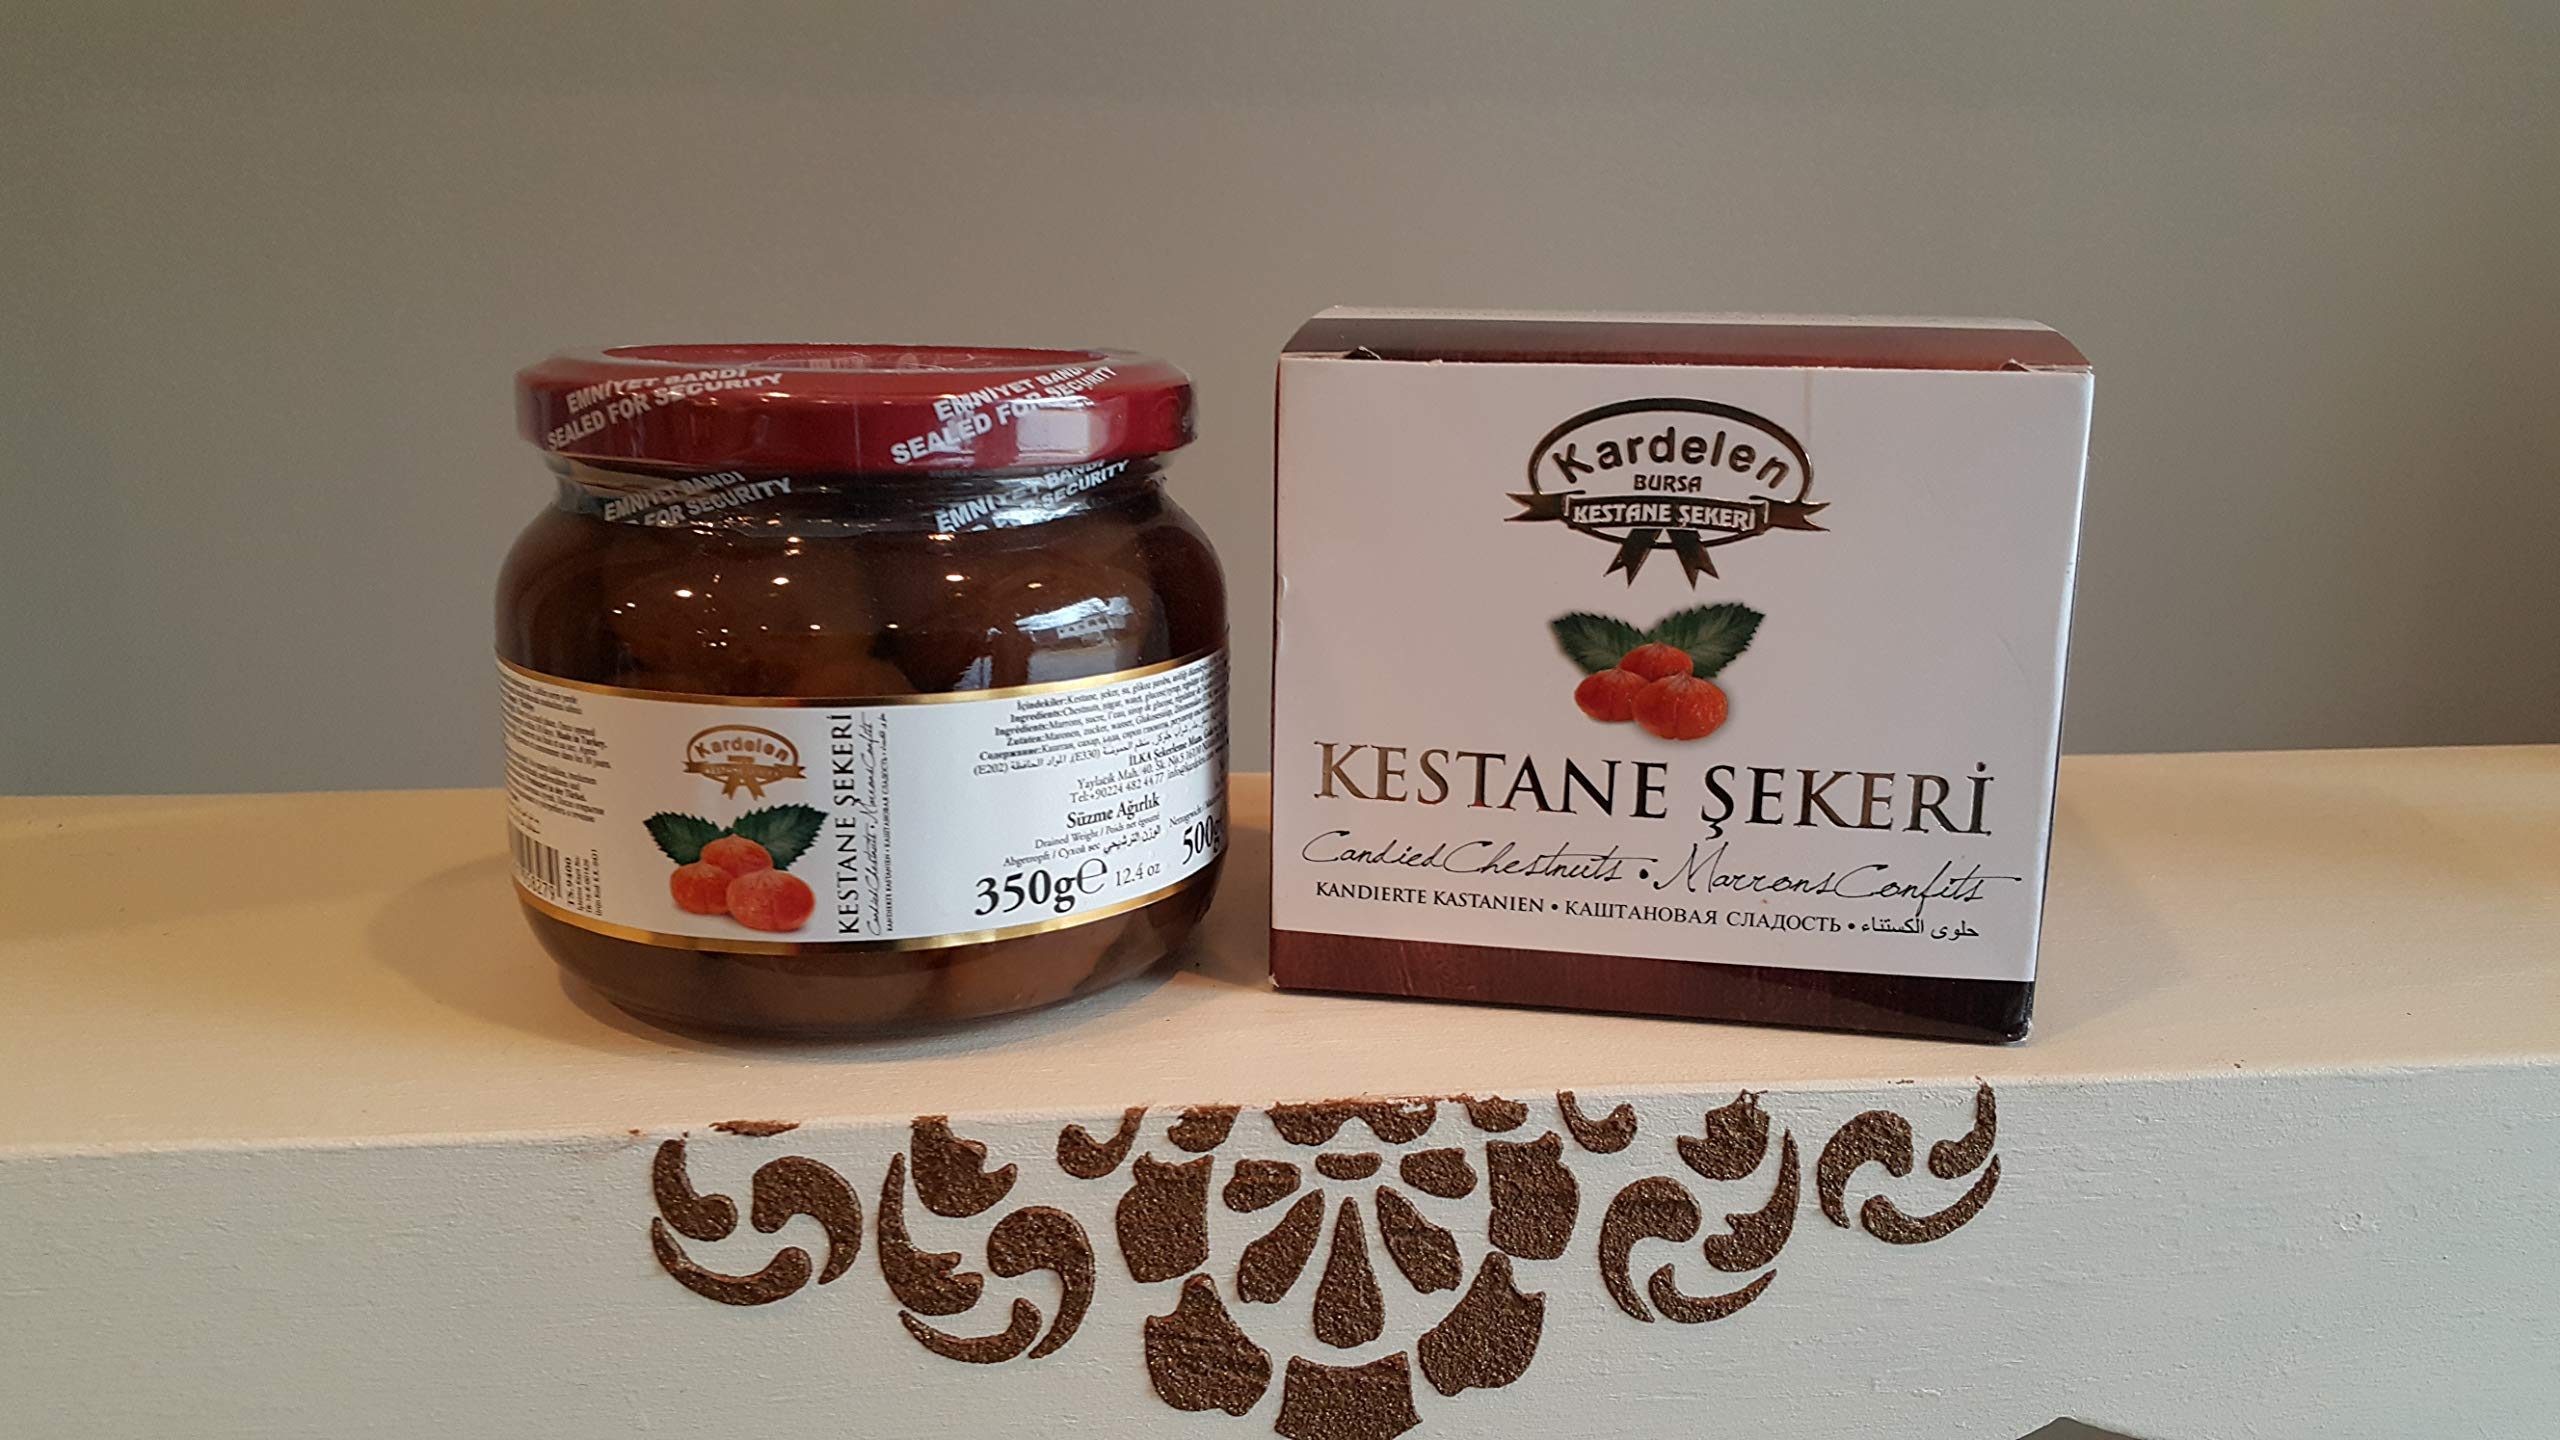 Kardelen Jarred Candied Chestnuts in Syrup 500gr (17.64oz) by Kardelen